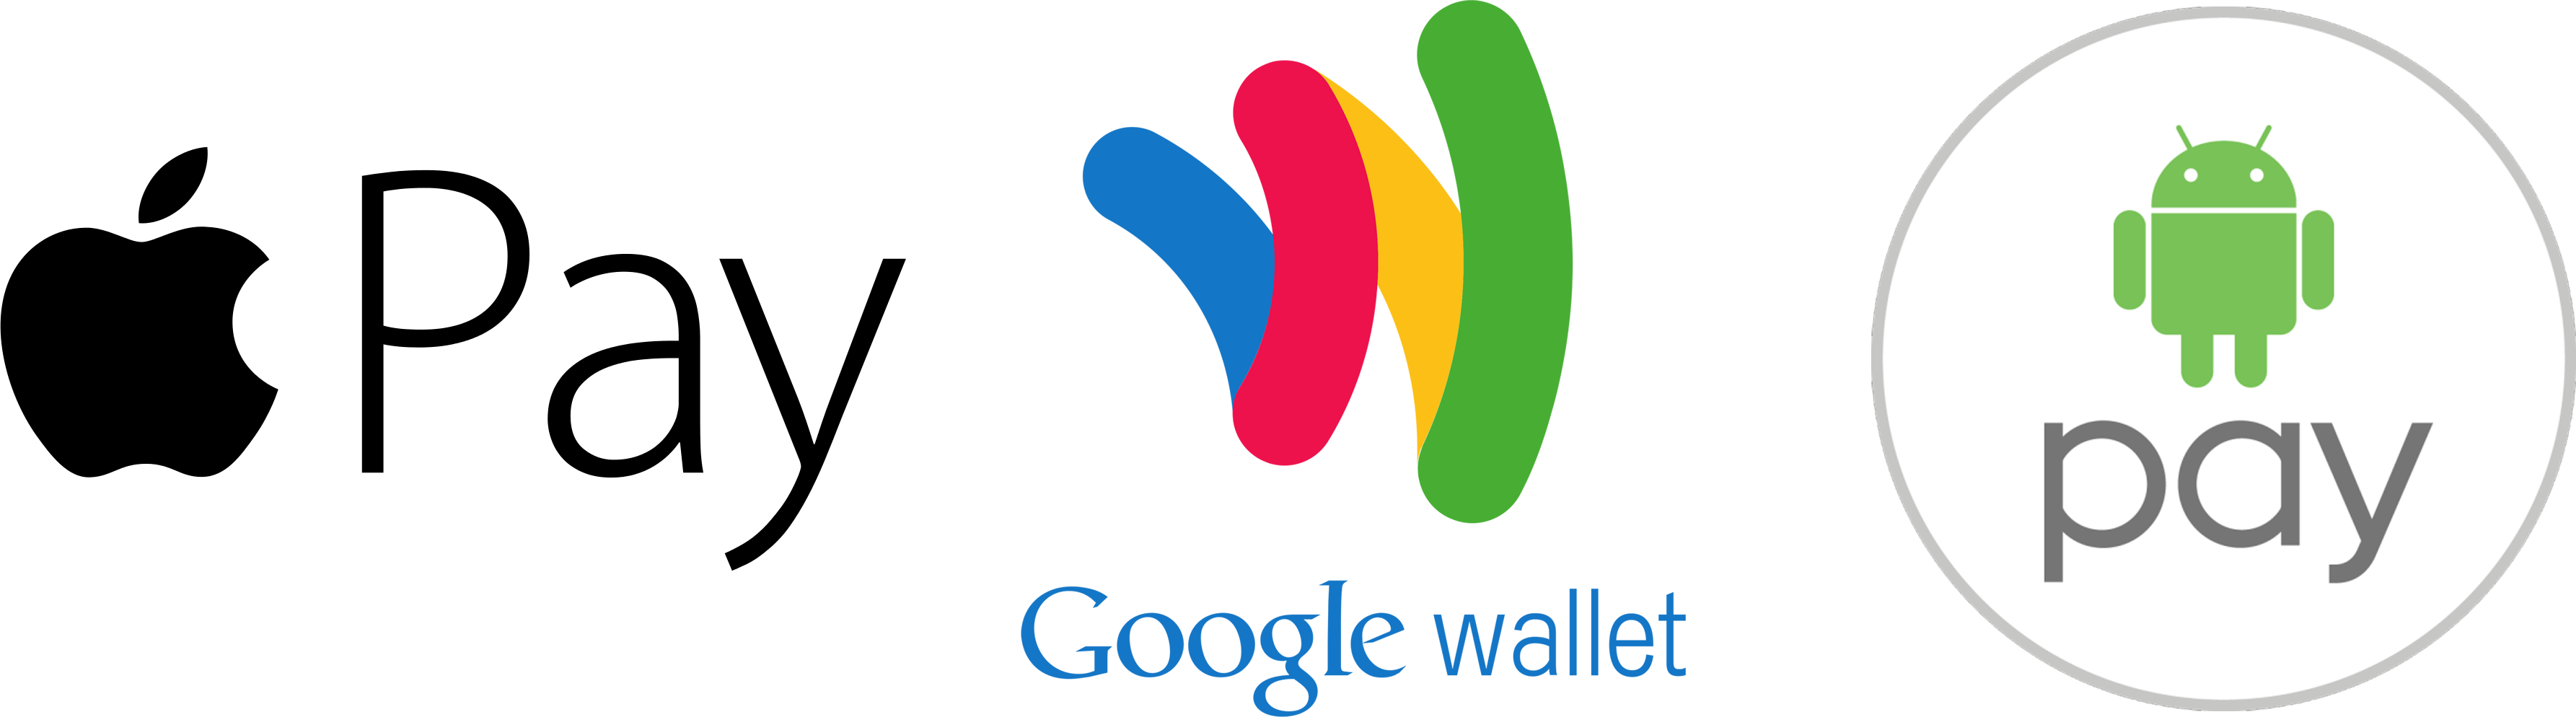 Apple-Android-Pay-logos